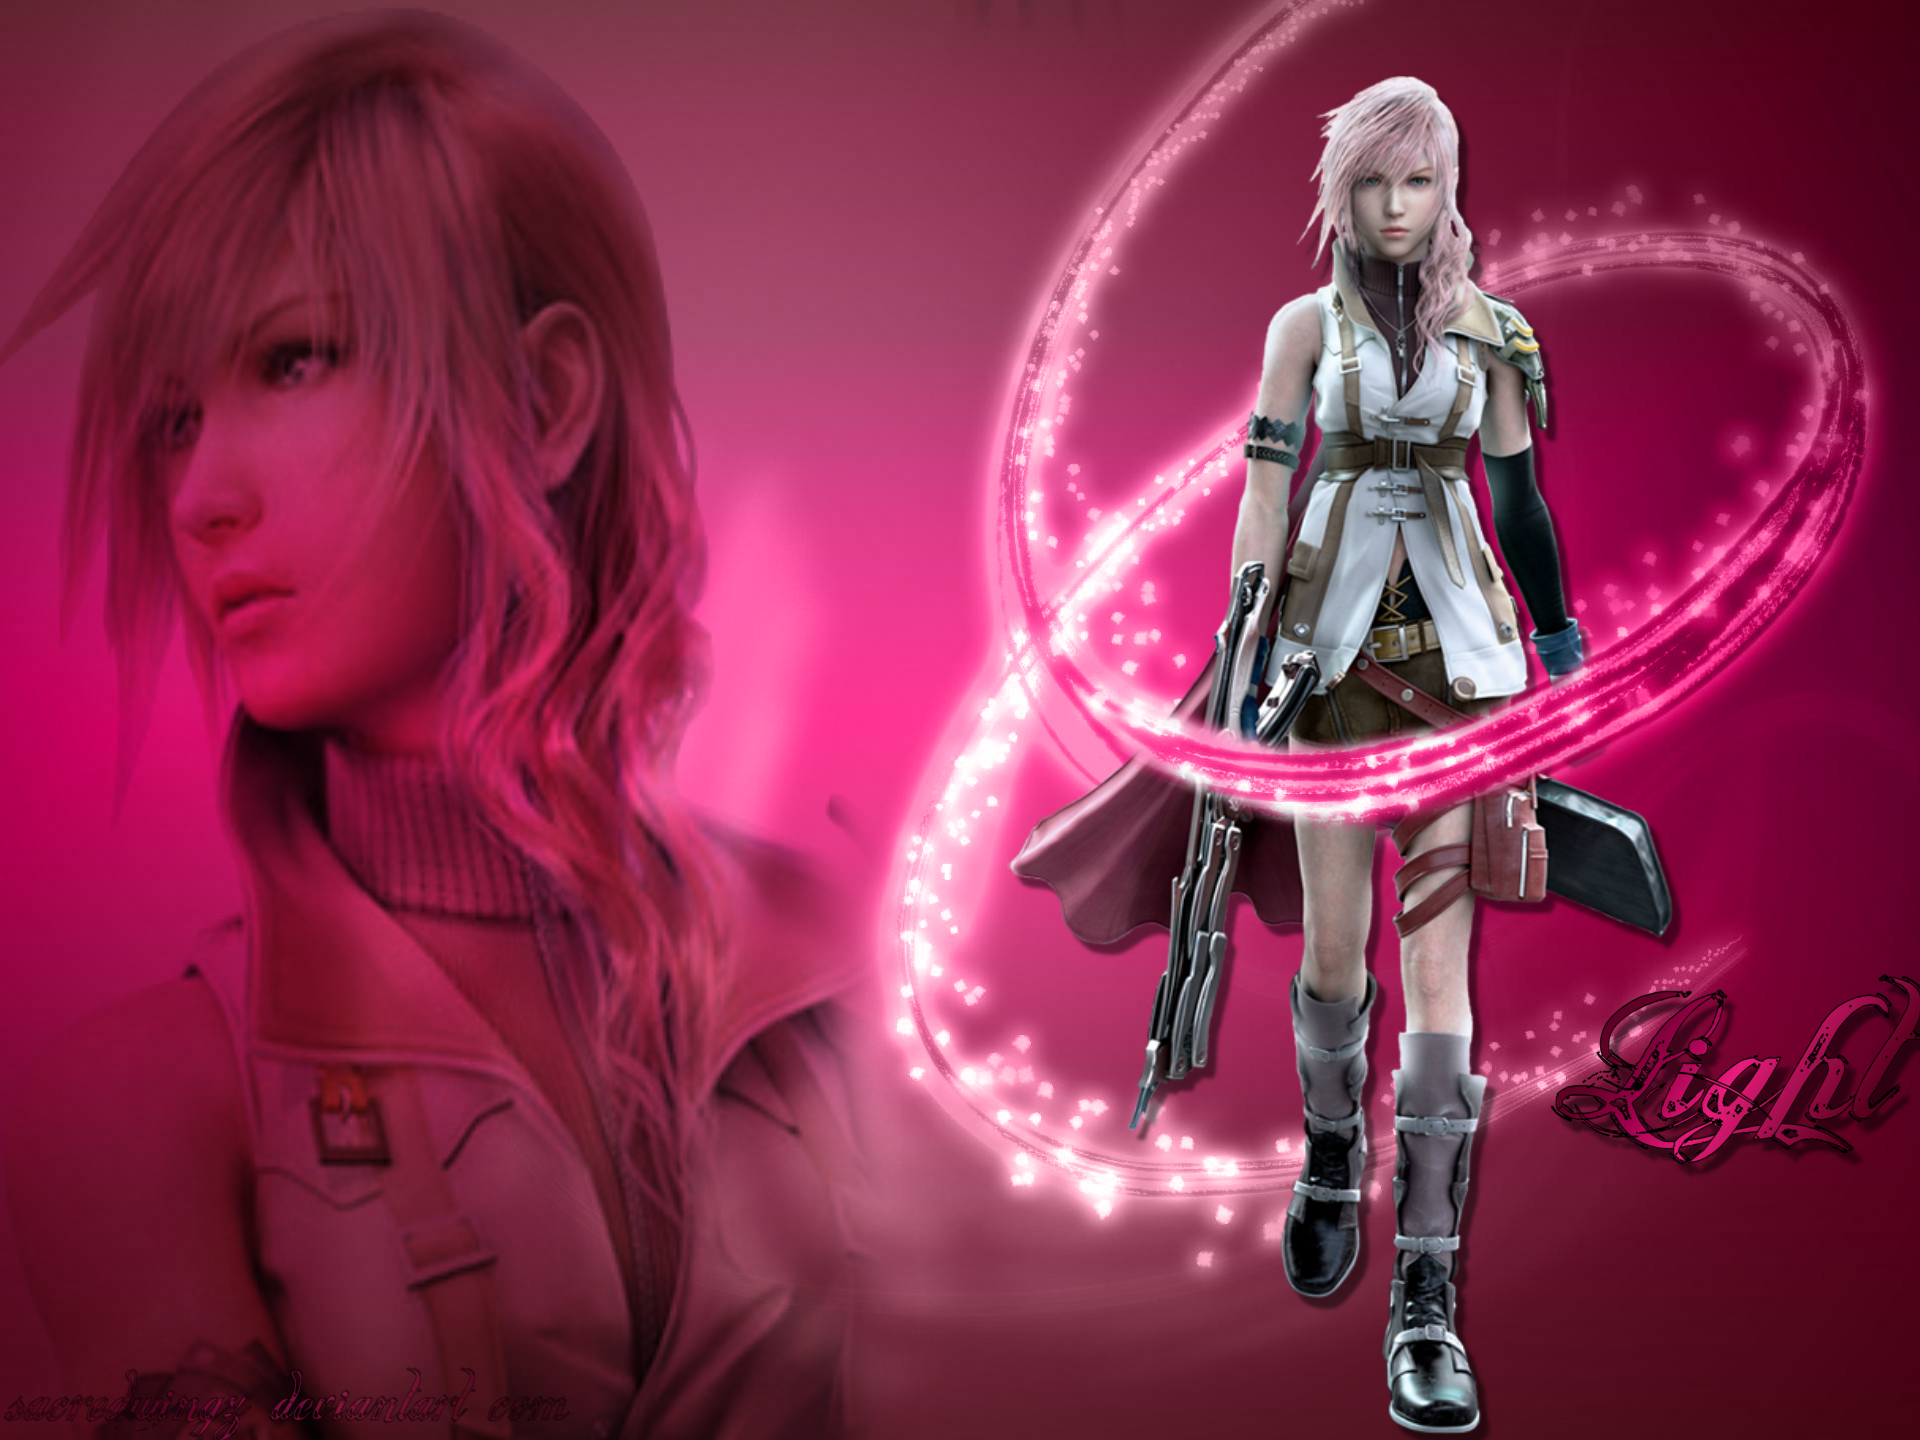 Final fantasy 13 lightning returns wallpaper pc final fantasy 13 lightning farron images light wp hd wallpaper and voltagebd Gallery